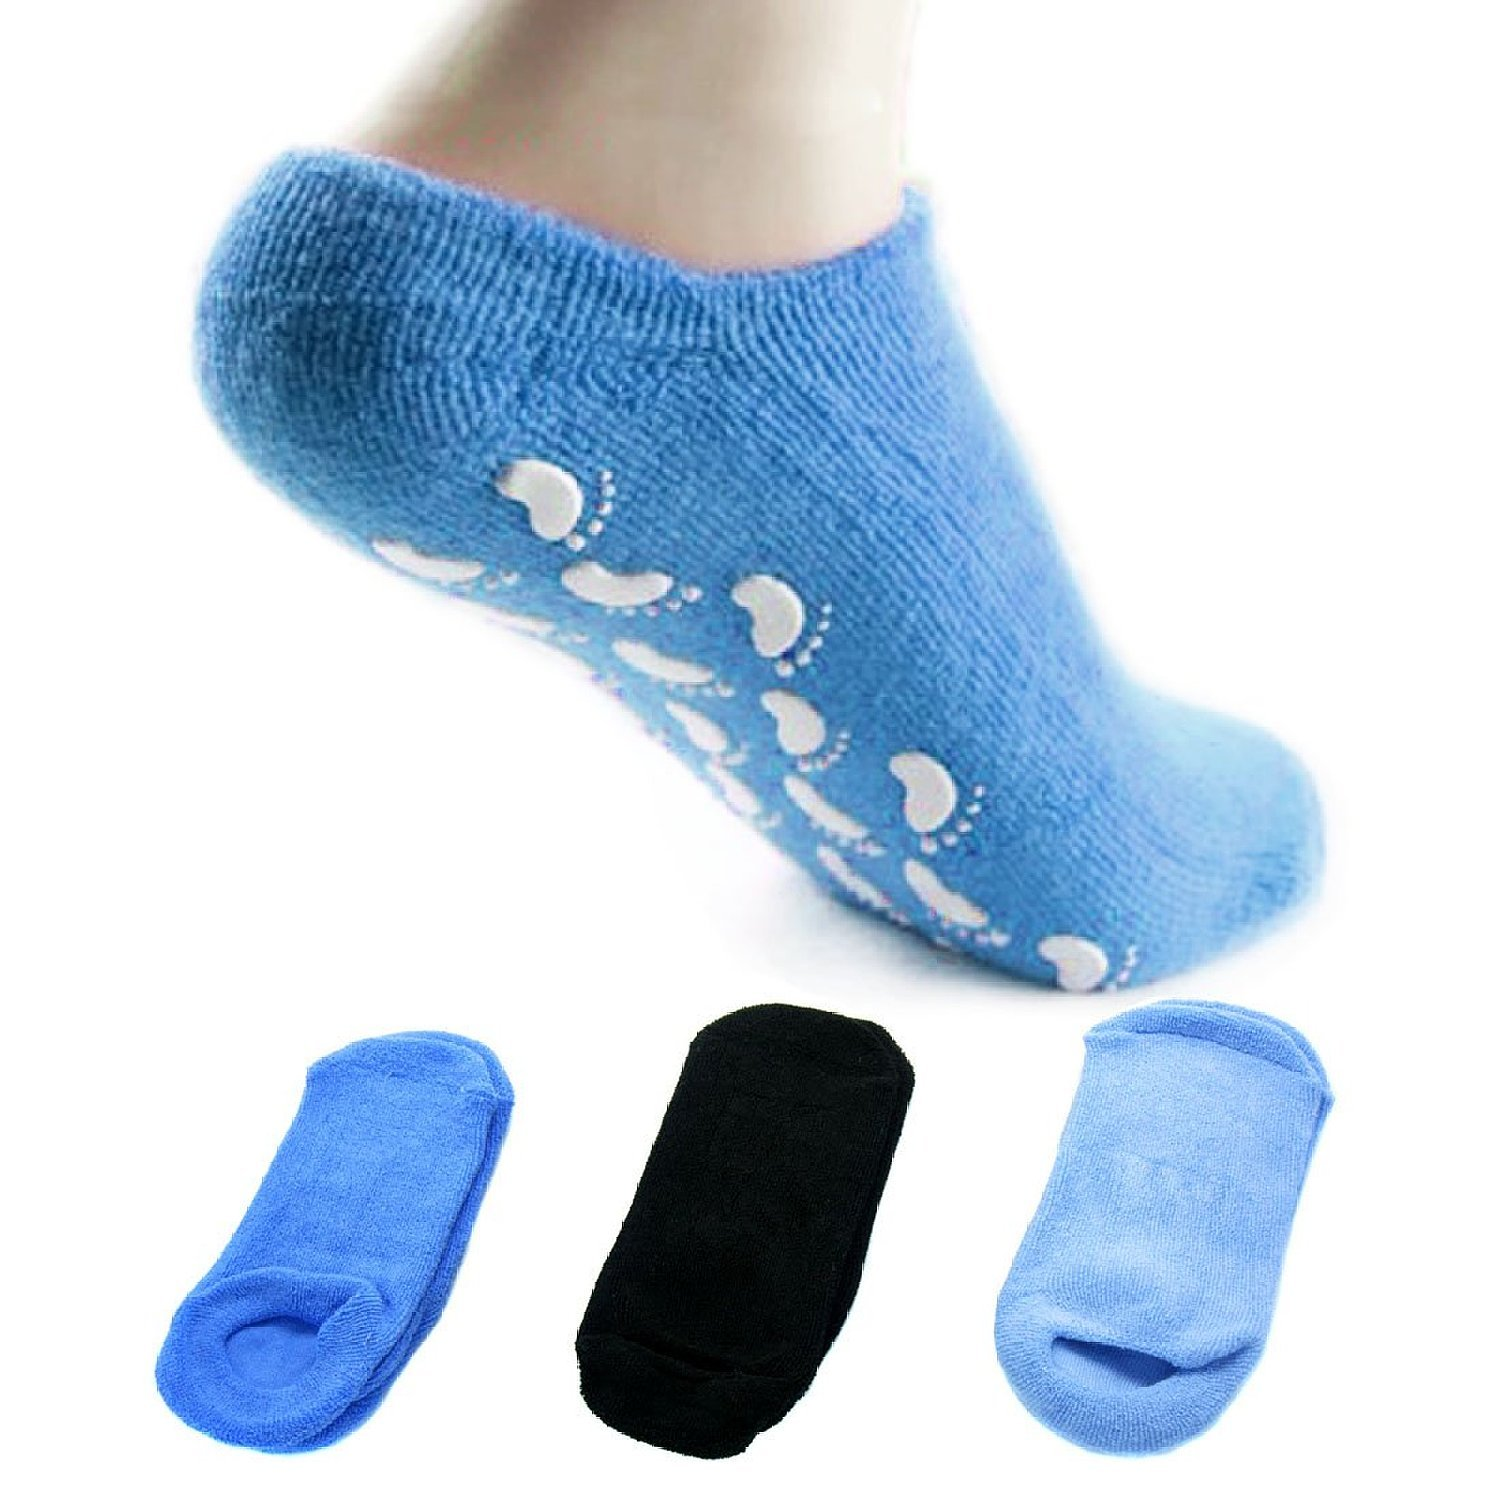 EUBEST 3 Pairs Silicone Dot Non Slip Soft Cotton Gripper Winter Yoga Socks for Women